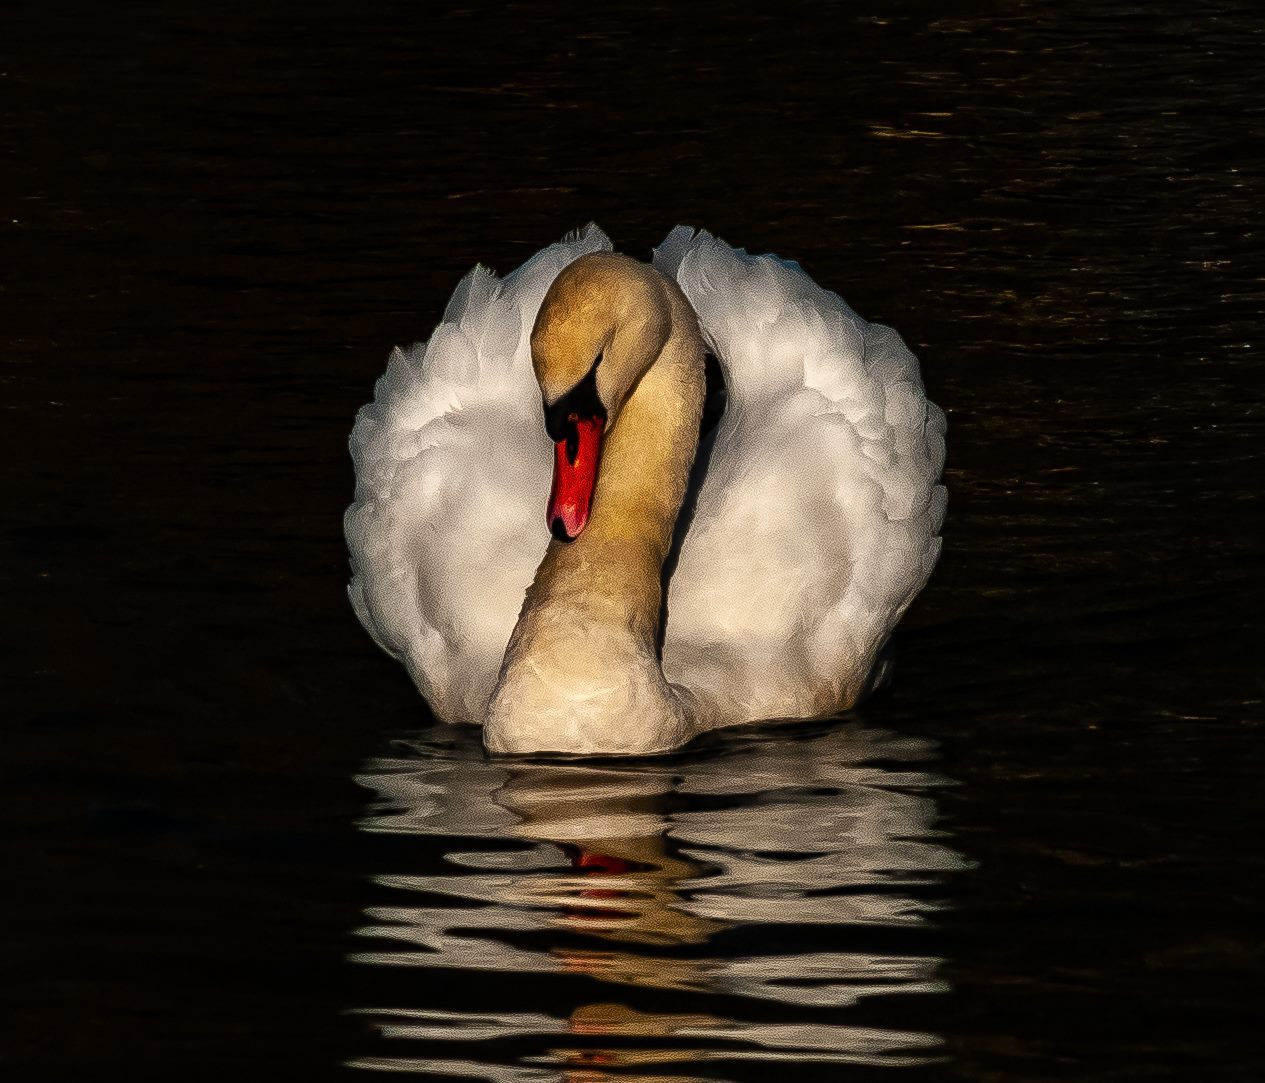 Swanning around, by Daily Echo Camera Club member Anthony James.